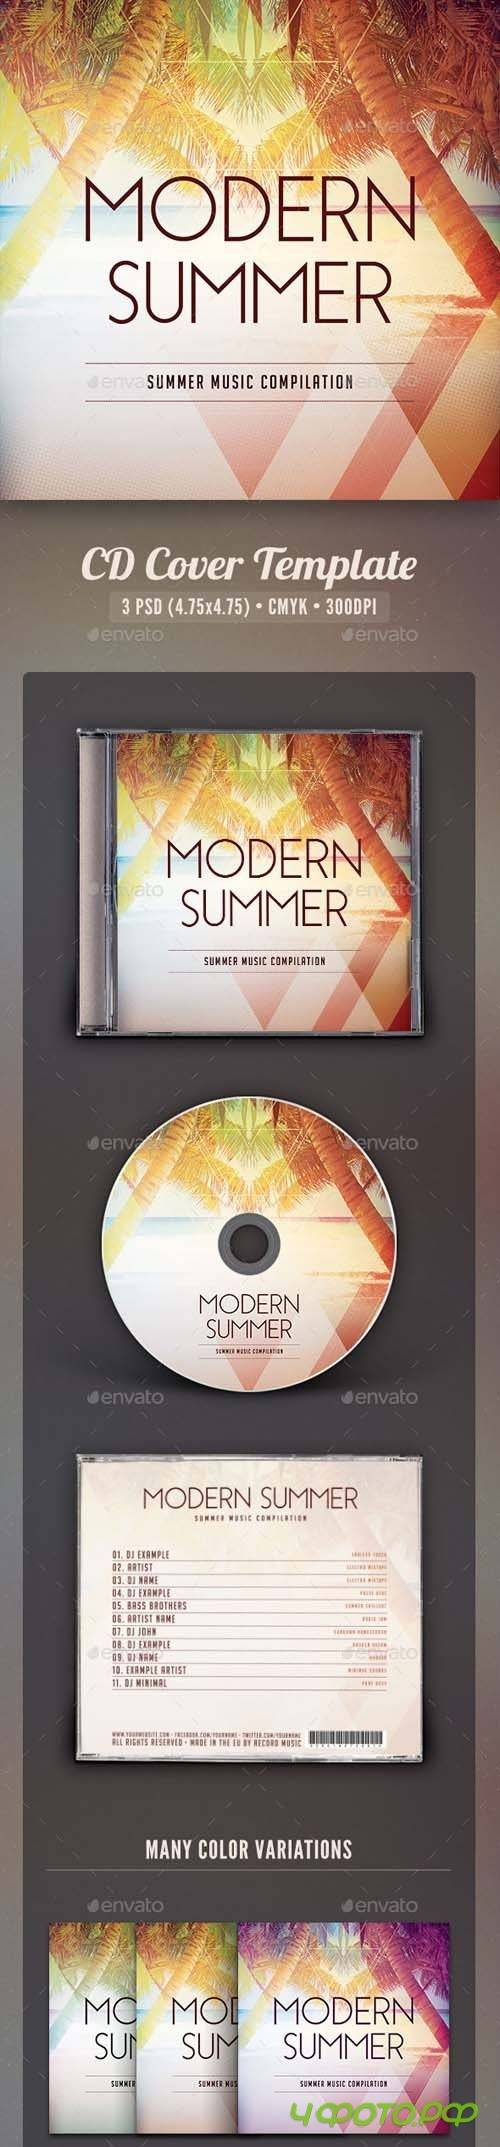 Modern Summer CD Cover Artwork - 16455379